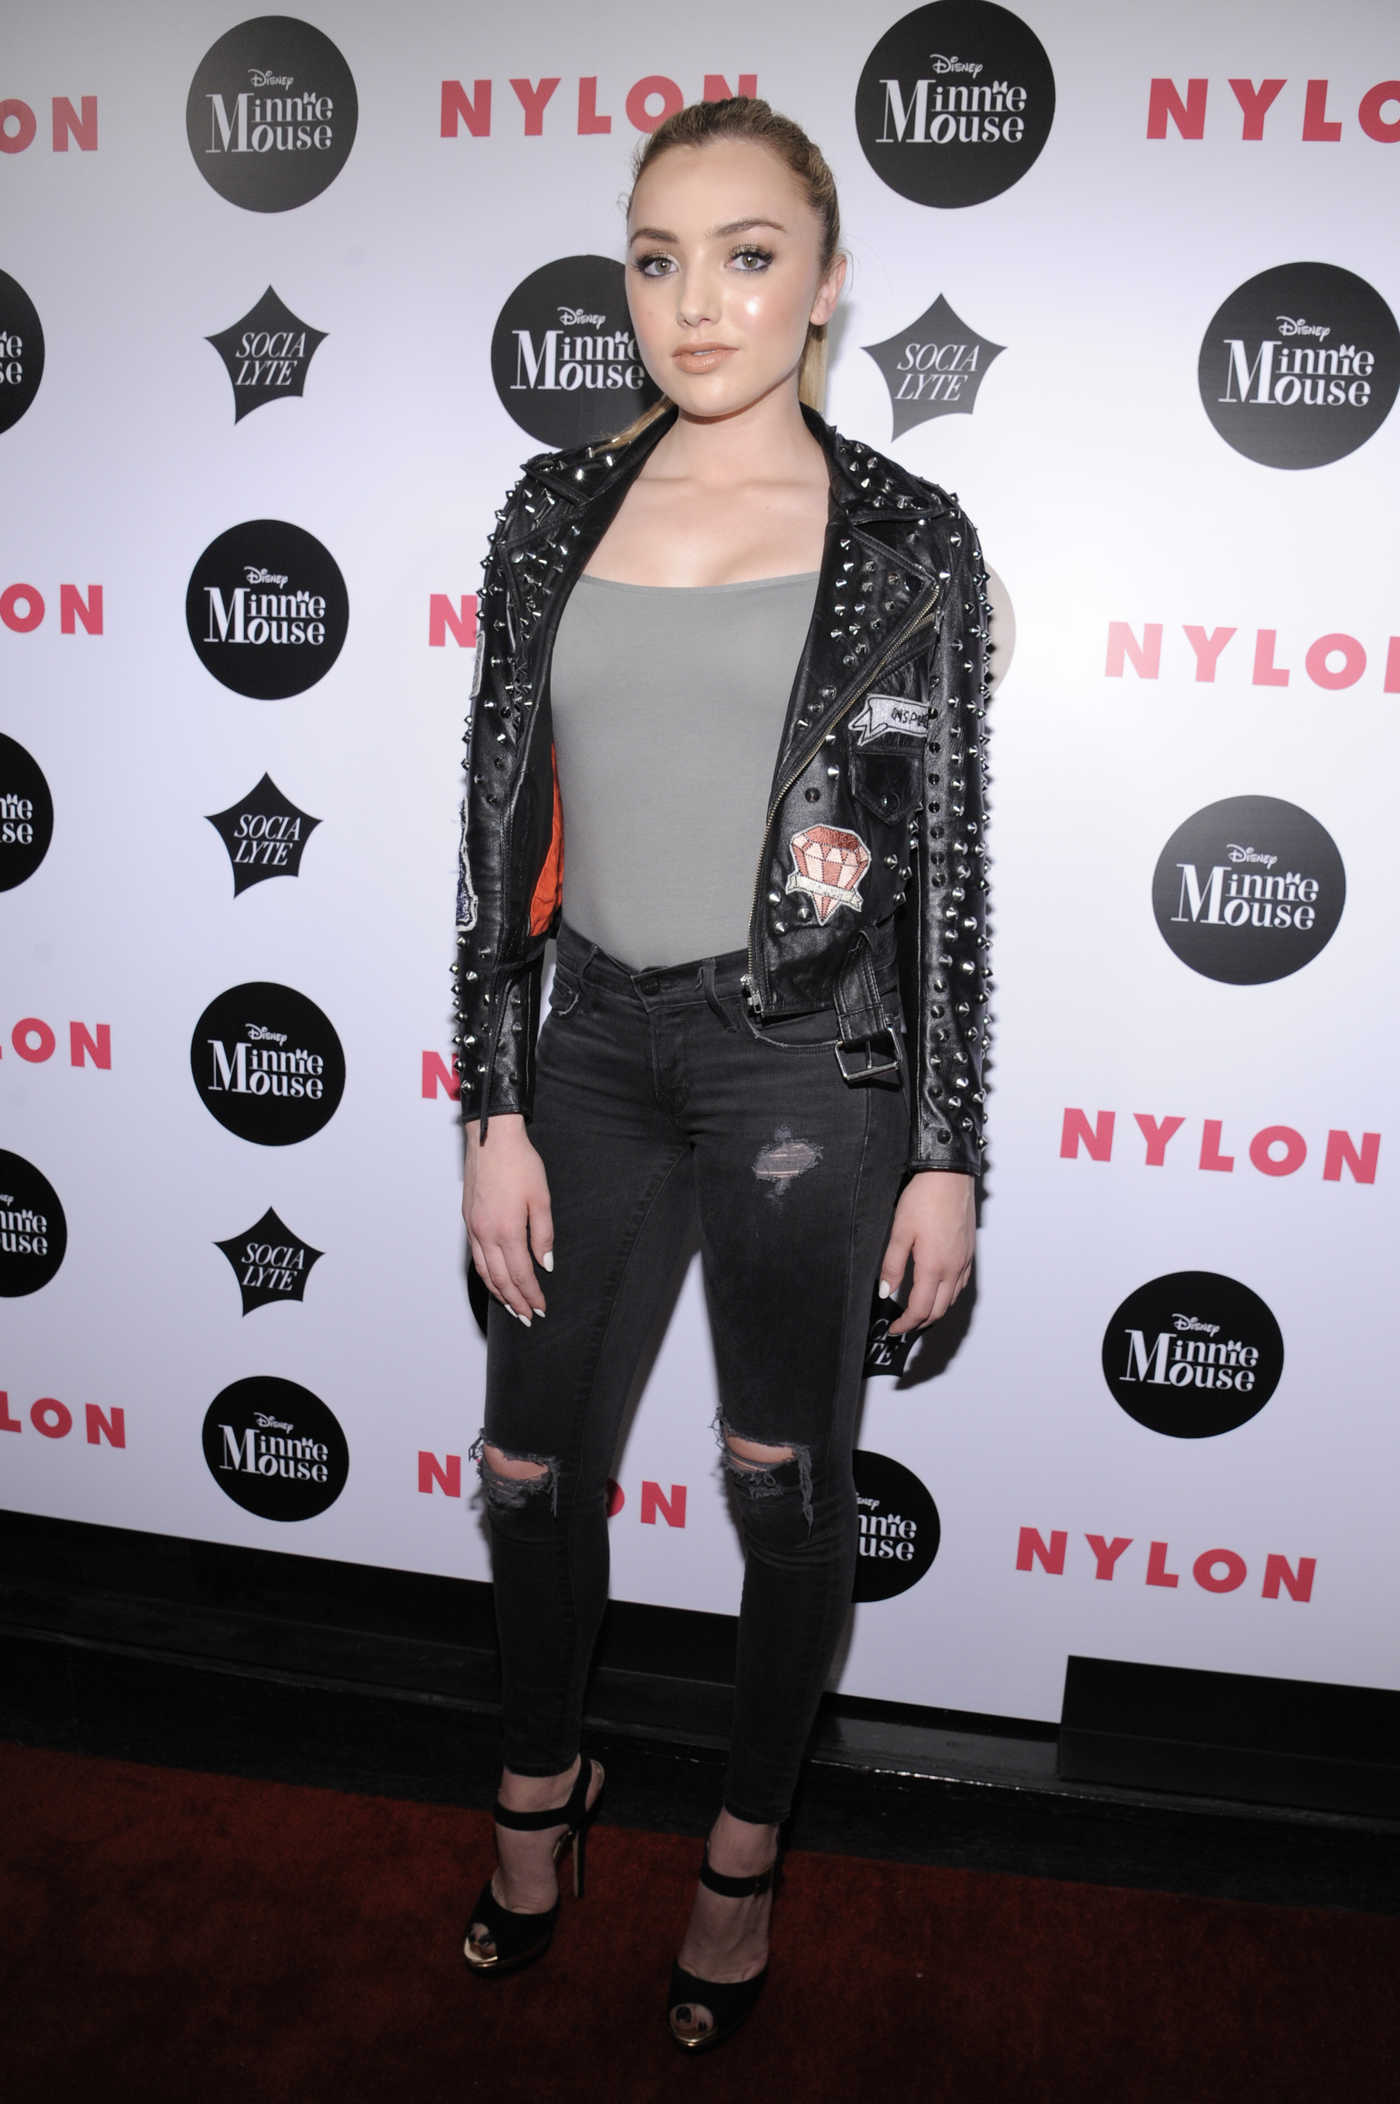 Peyton List at the NYLON Rebel Fashion Party in New York City 09/08/2016